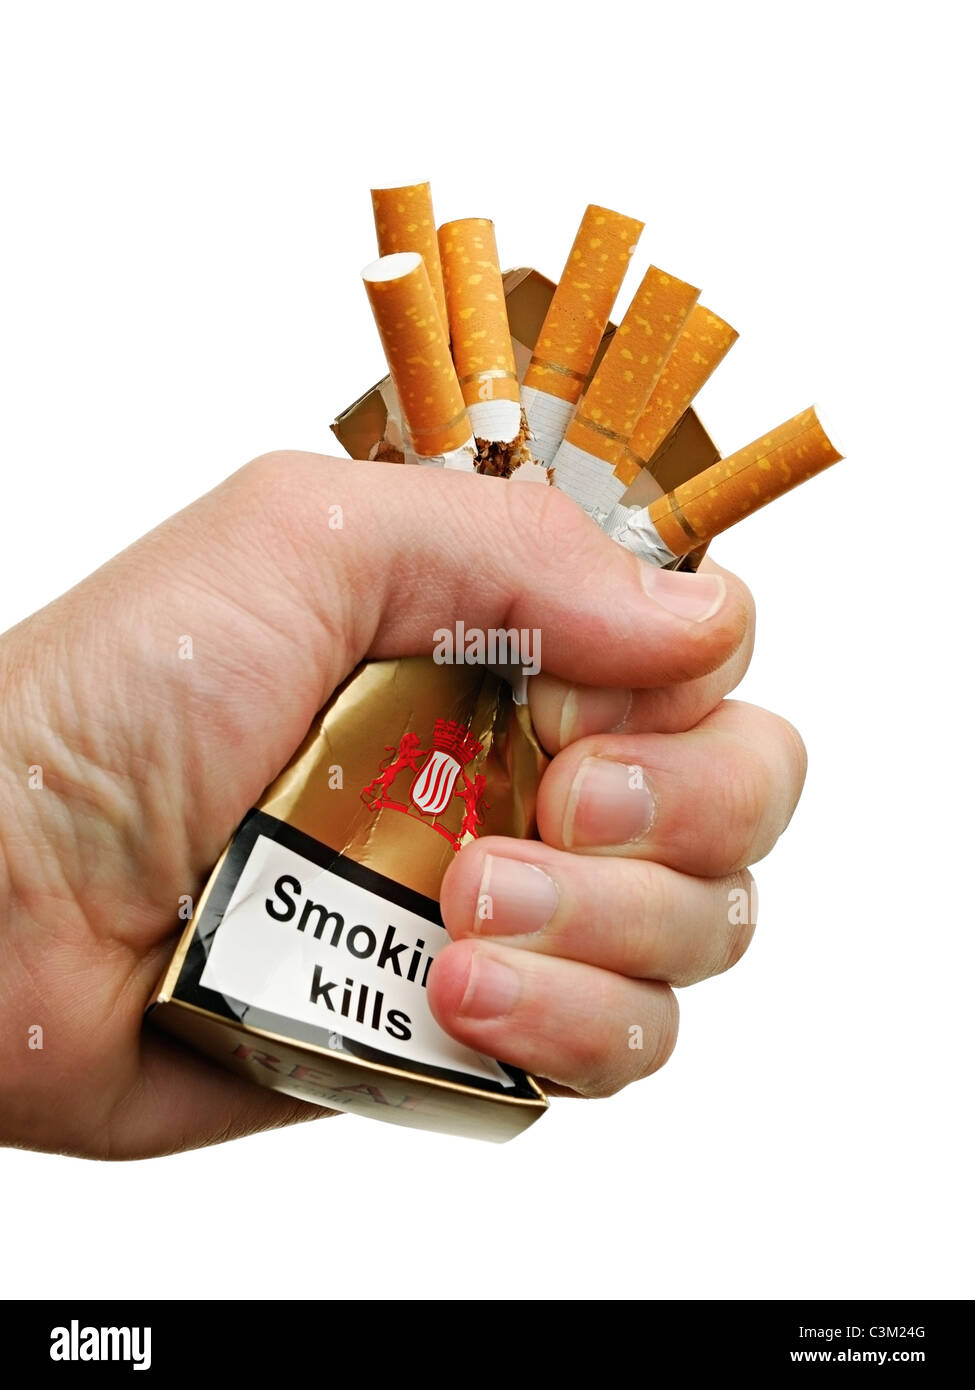 Hand Crushing a Packet of Cigarettes, Close Up, Cut Out. - Stock Image